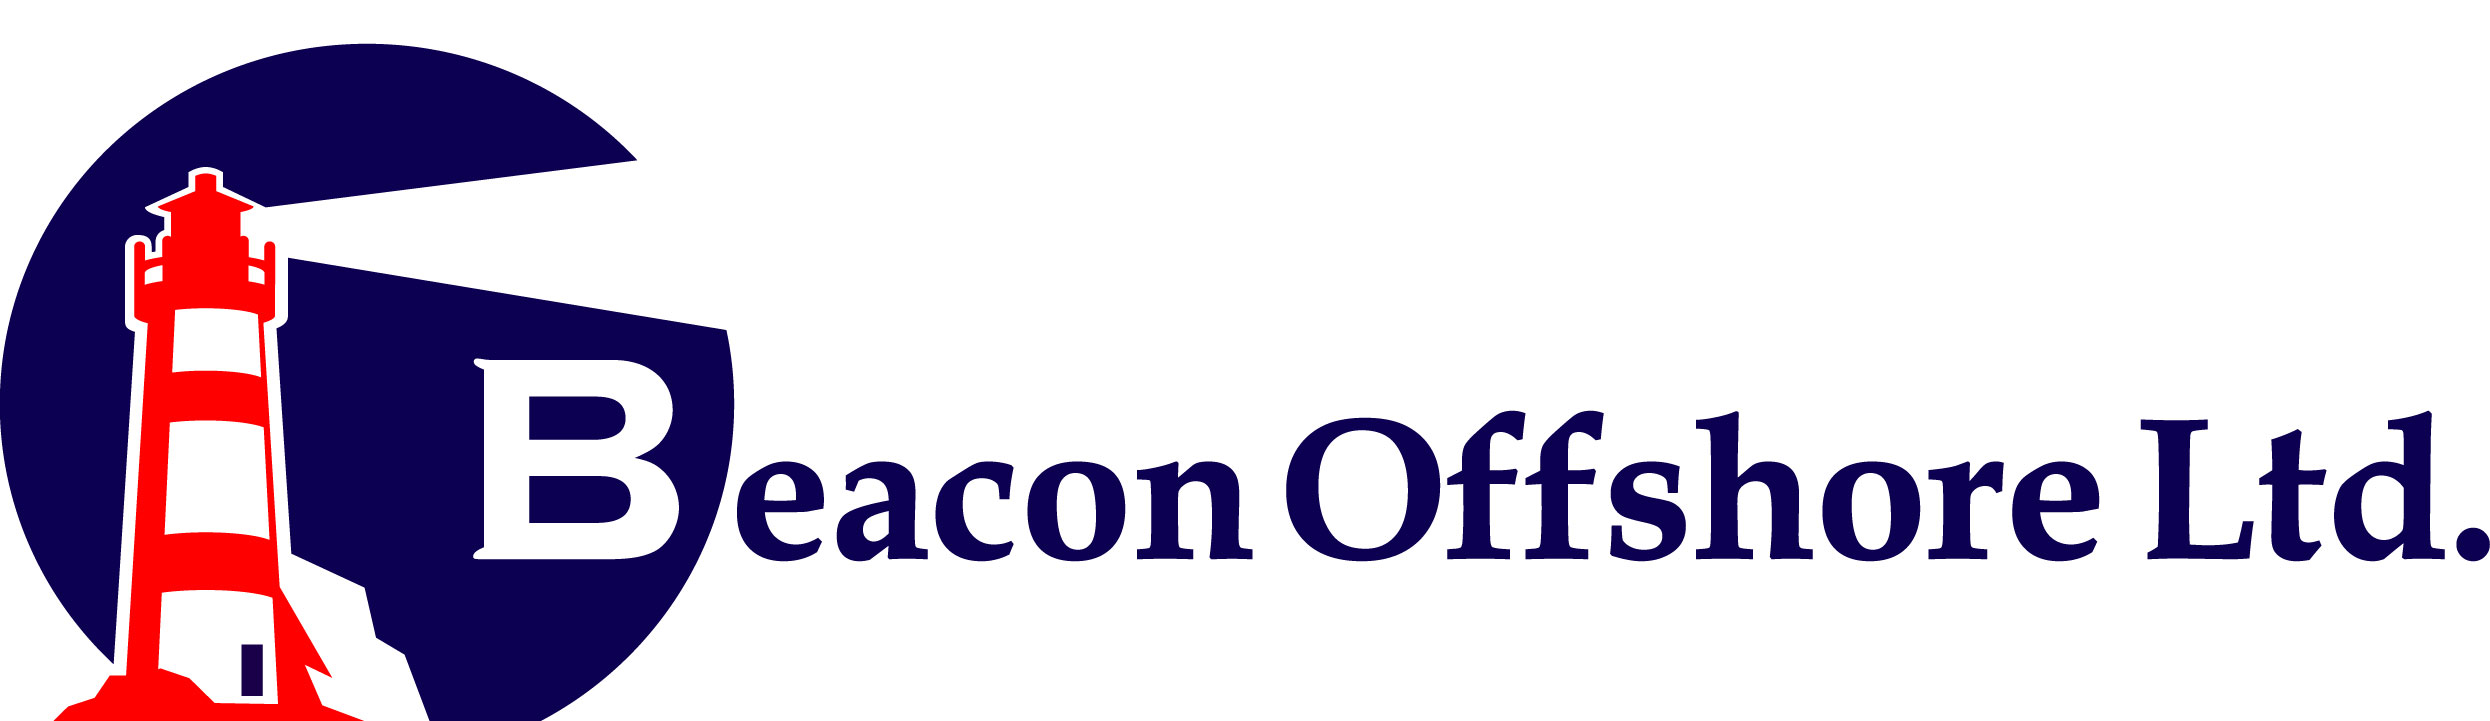 beacon offshore.jpg